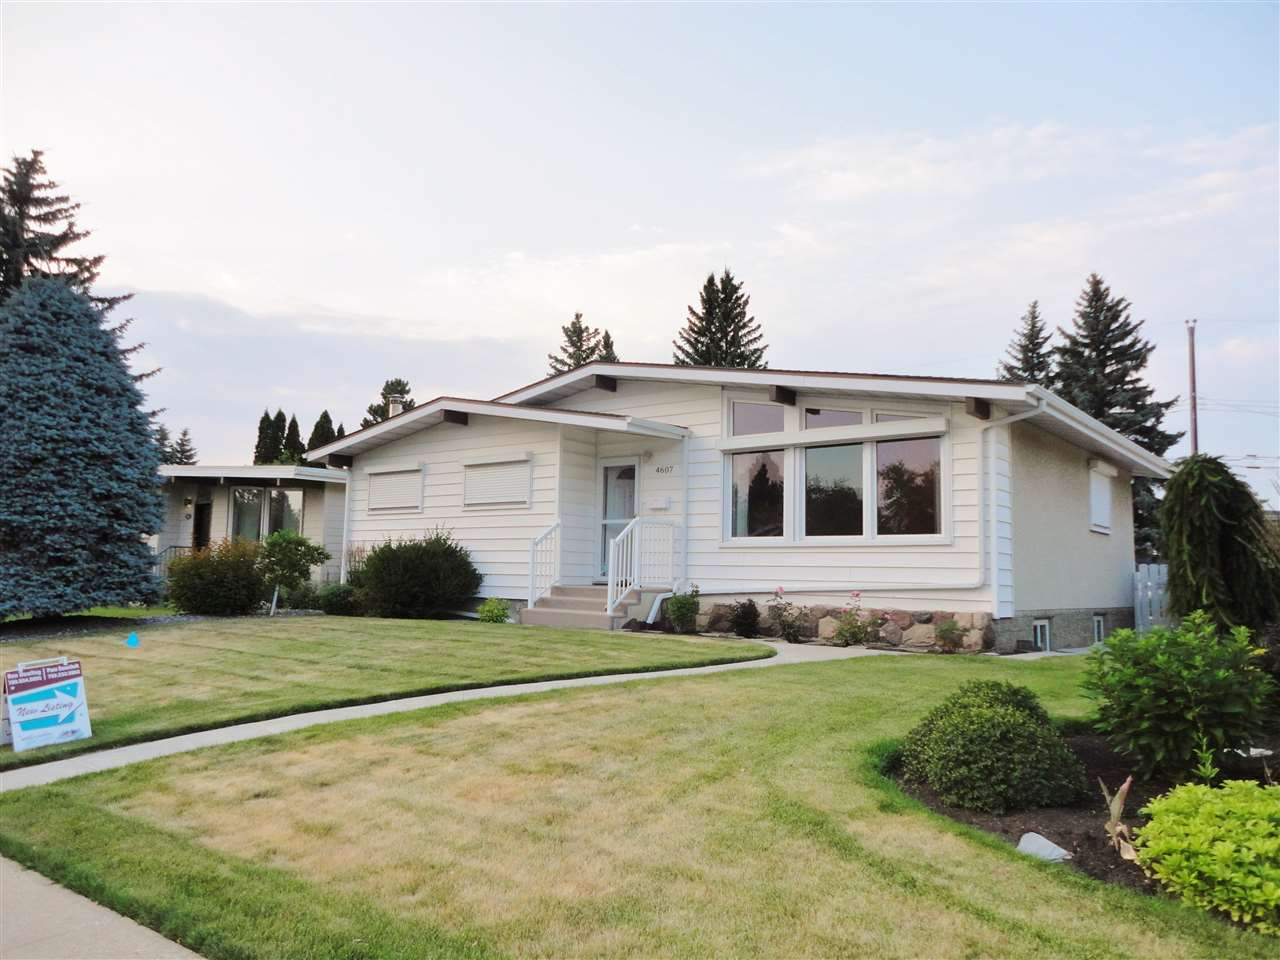 Main Photo: 4607 113A Street in Edmonton: Zone 15 House for sale : MLS(r) # E4074469